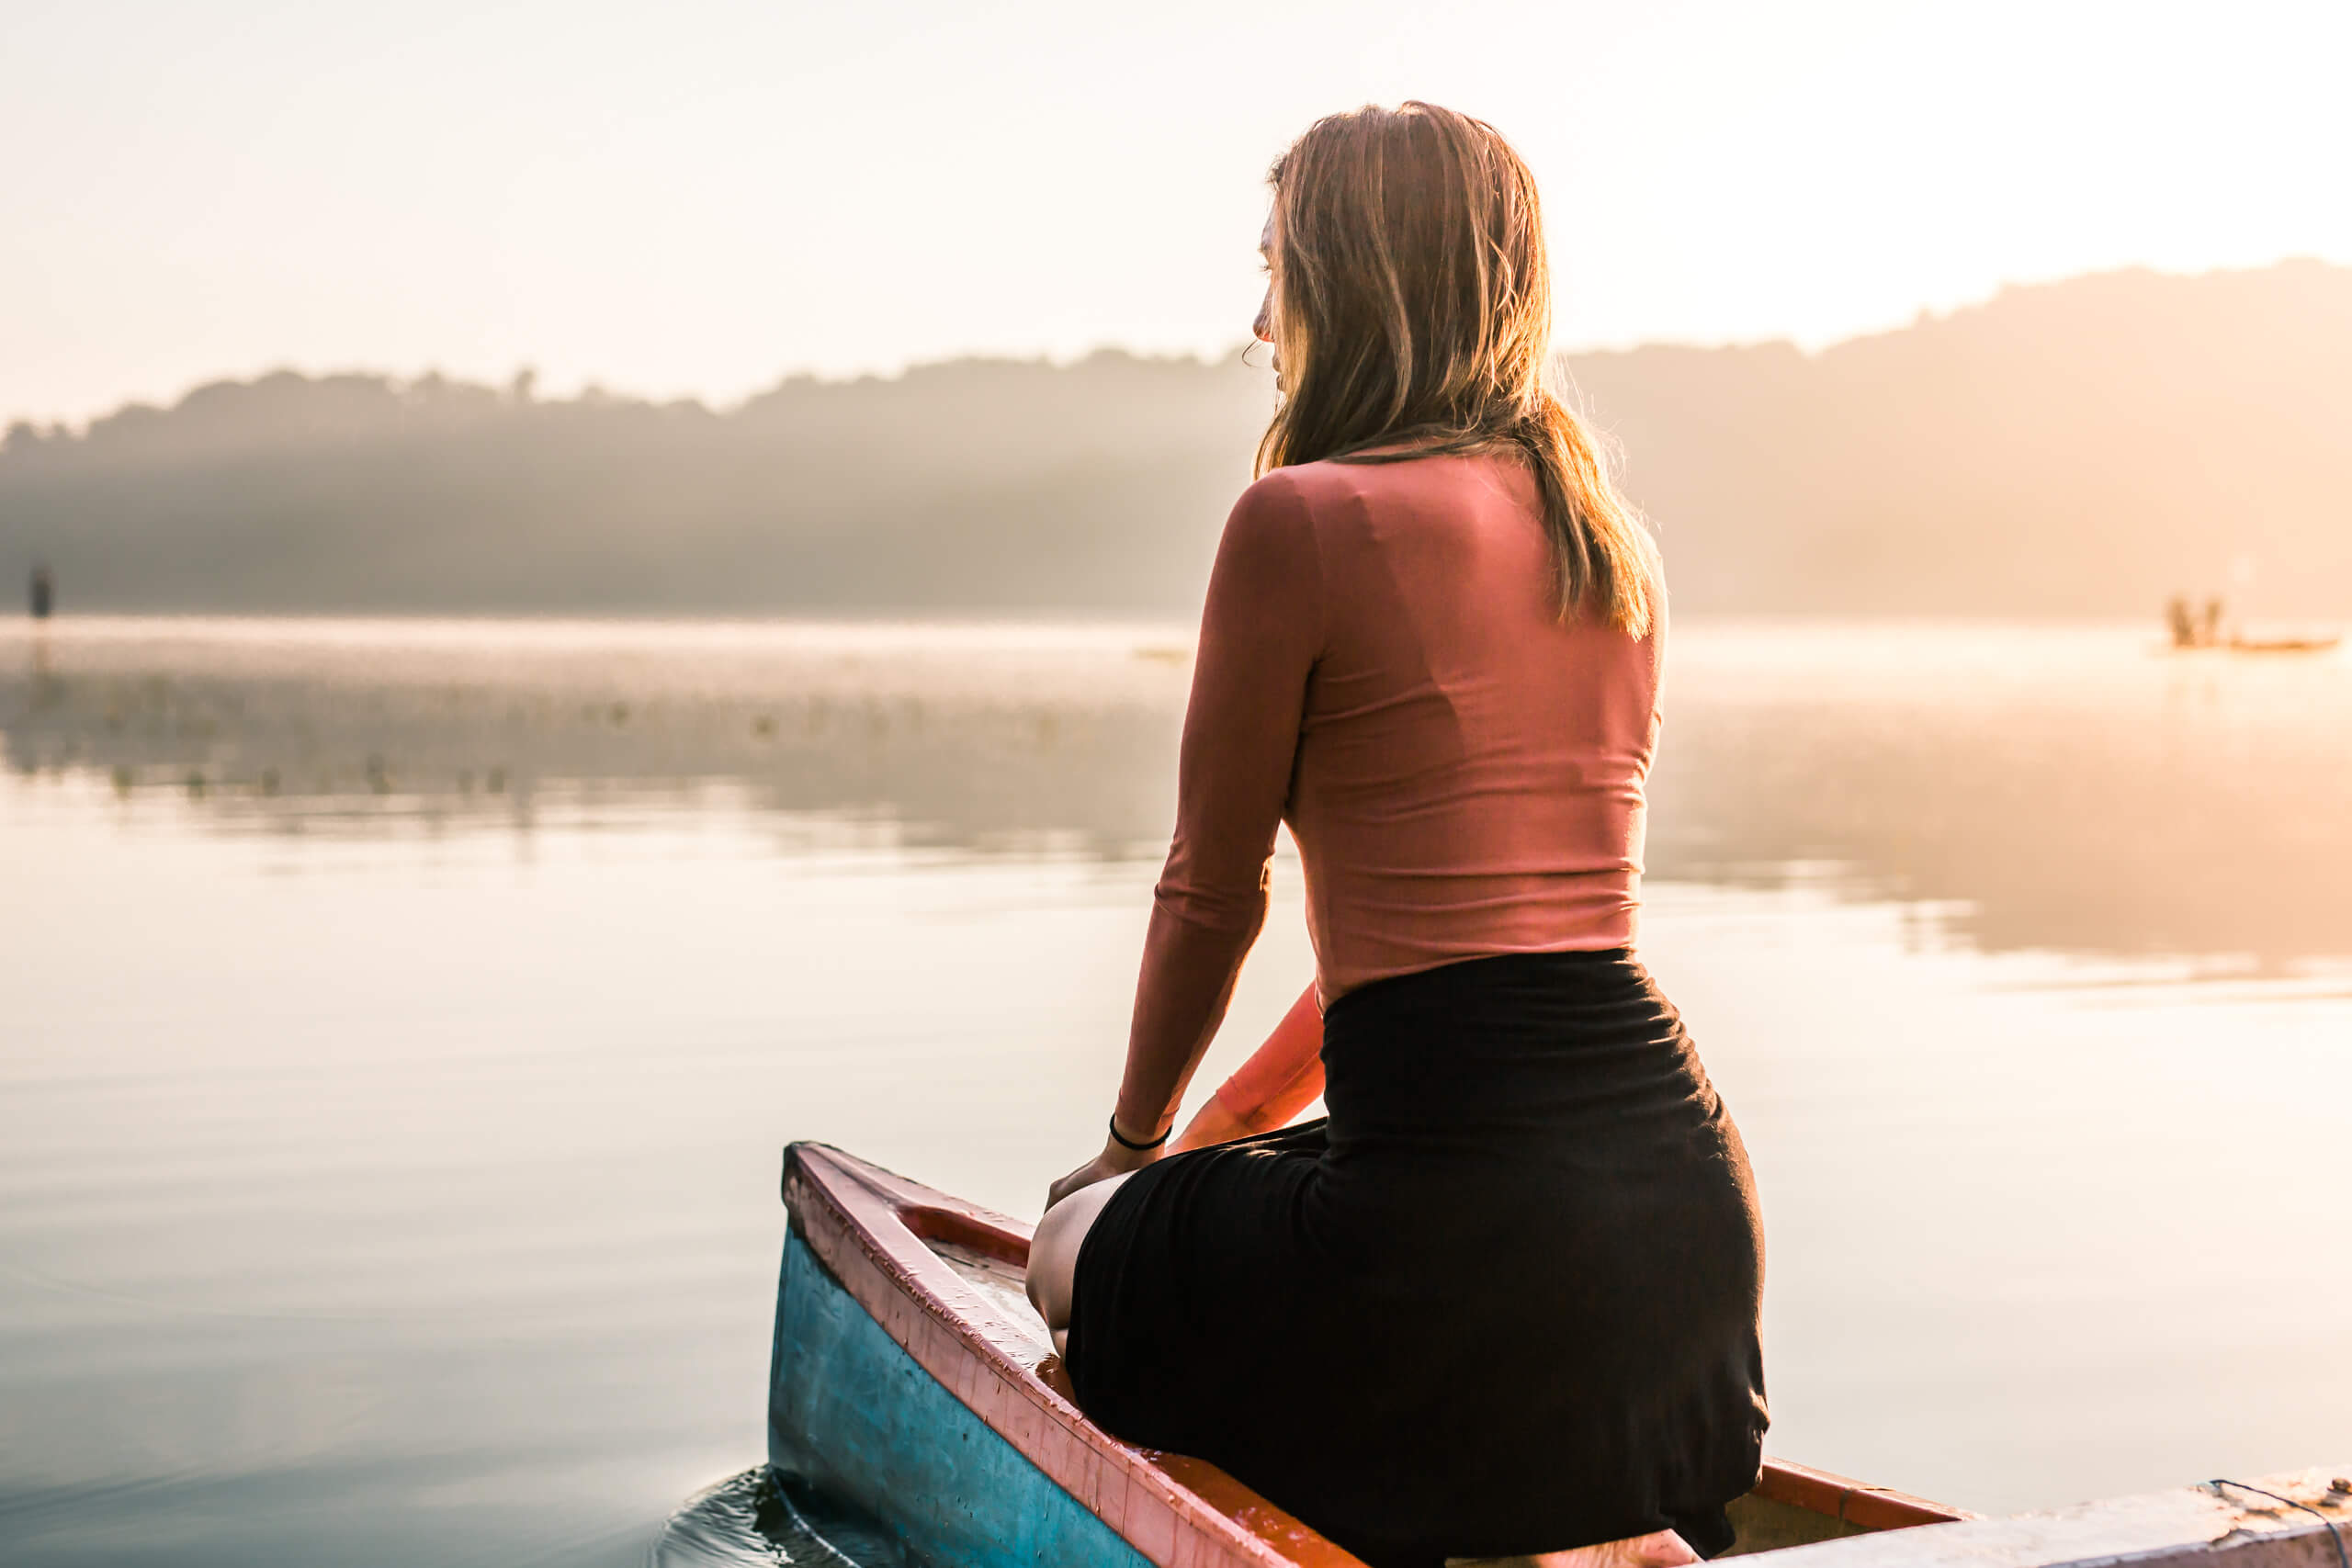 TAMBLINGAN LAKE TEMPLE | Capturing a moment of solitude on the bow of the canoe as the sun continued to grow.